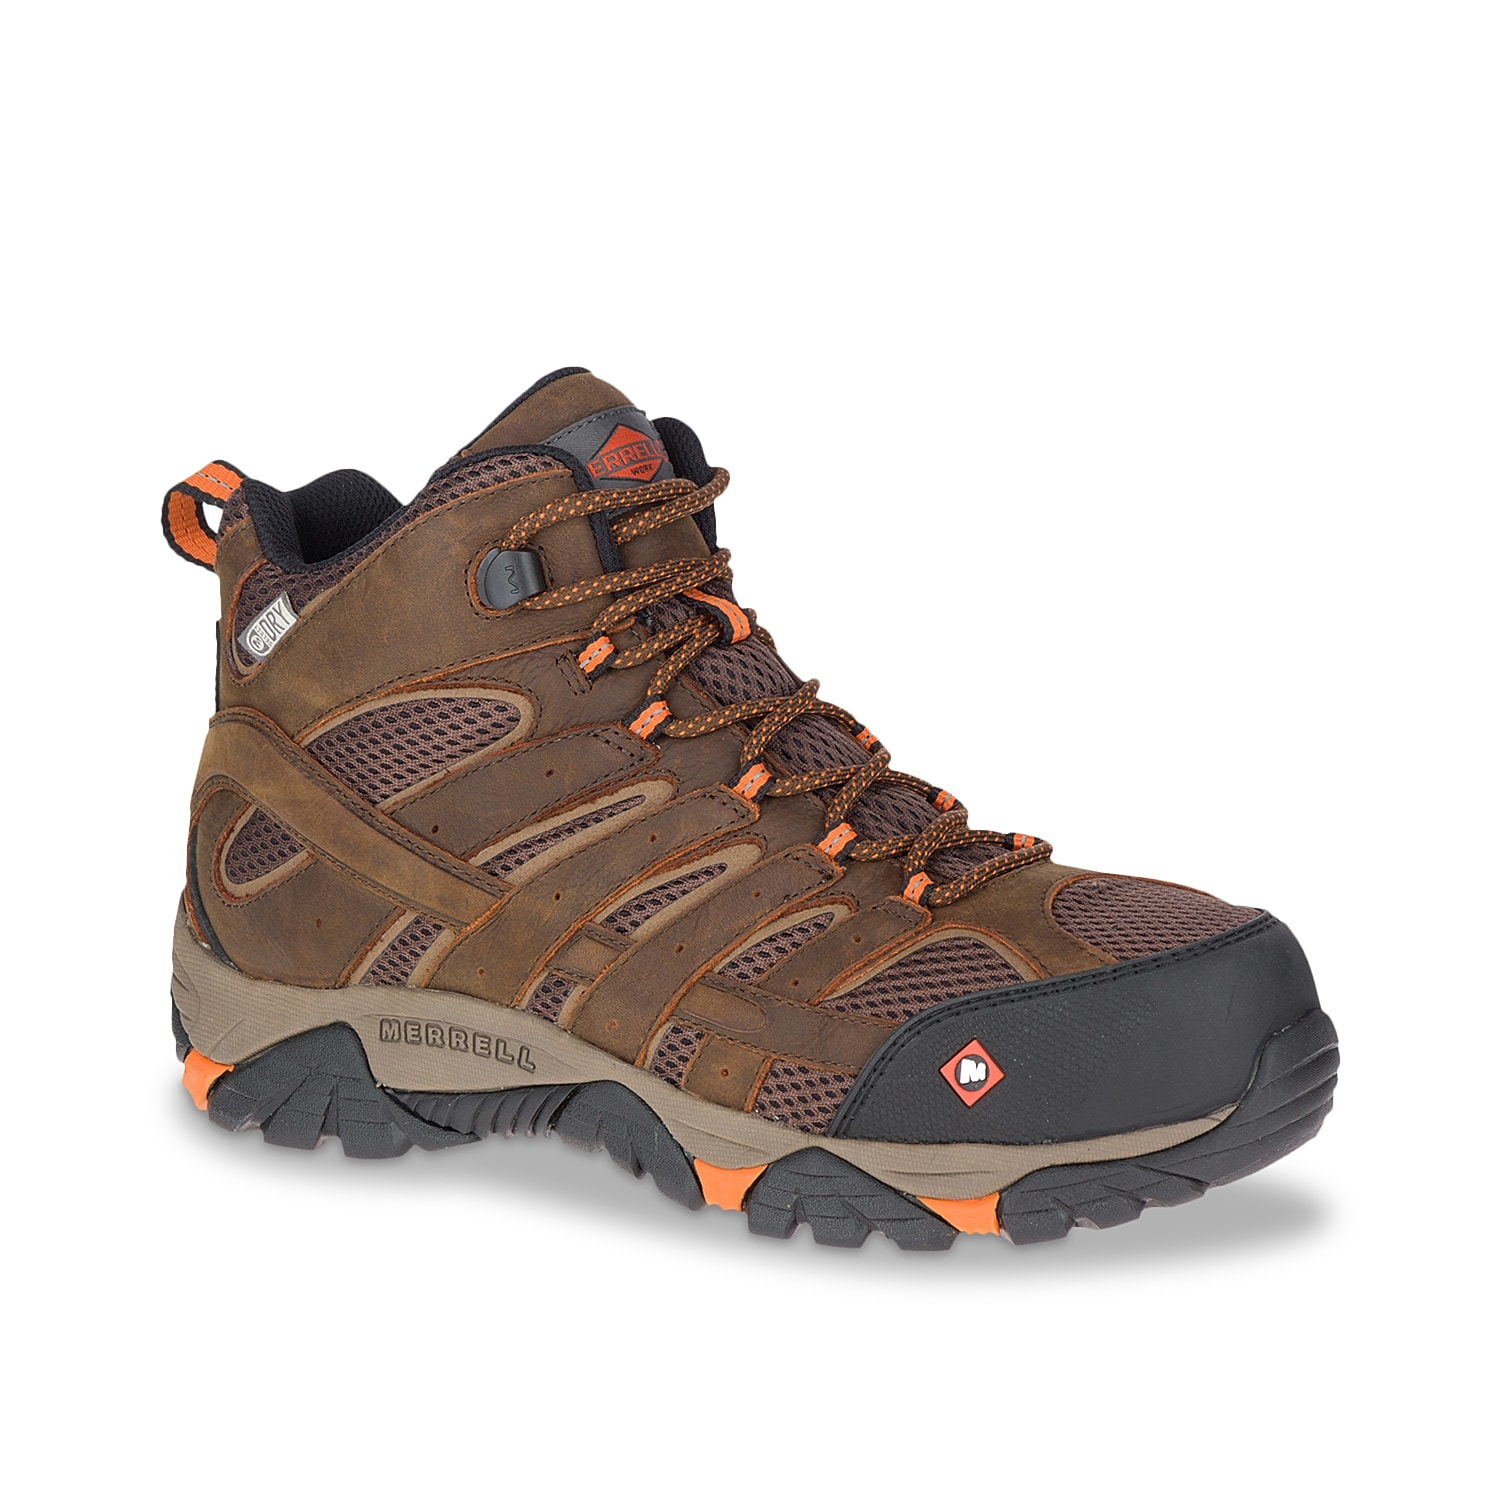 Trail job sites can be tiring and unsafe and that\\\'s why you need the Merrell Moab Vertex mid work boot. Featuring waterproof and airy leather-textile construction, this lace-up boot has secure composite toe, comfortable comfortbase footbed and midsole along with slip or oil-resistant sole.